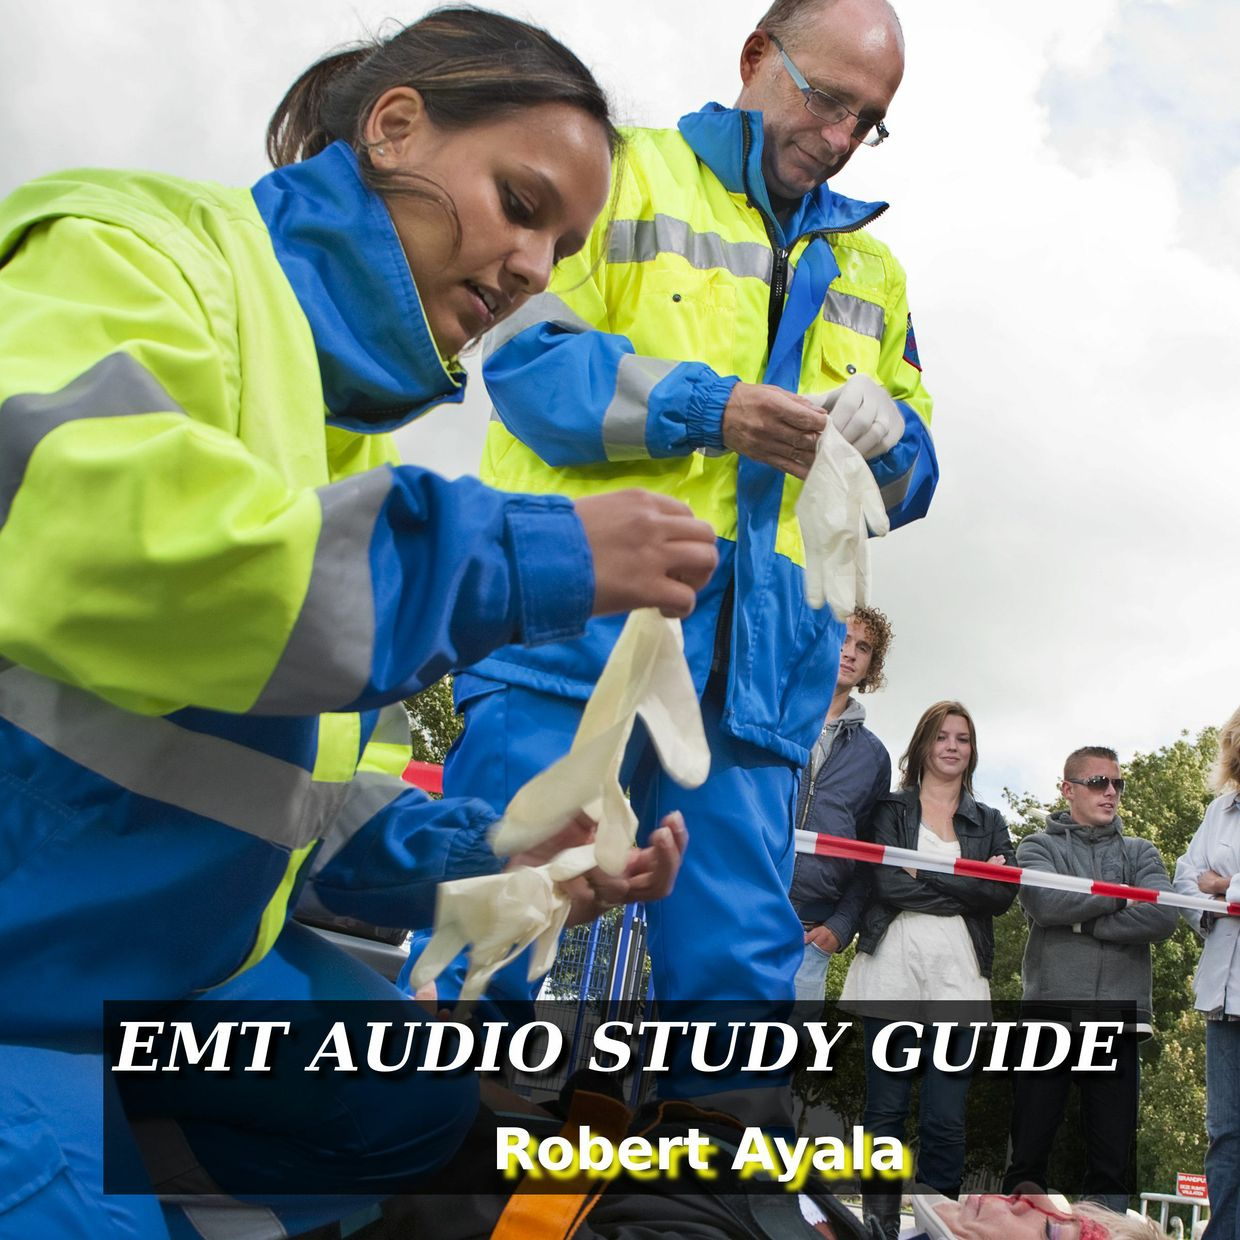 EMT Audio Study Guide